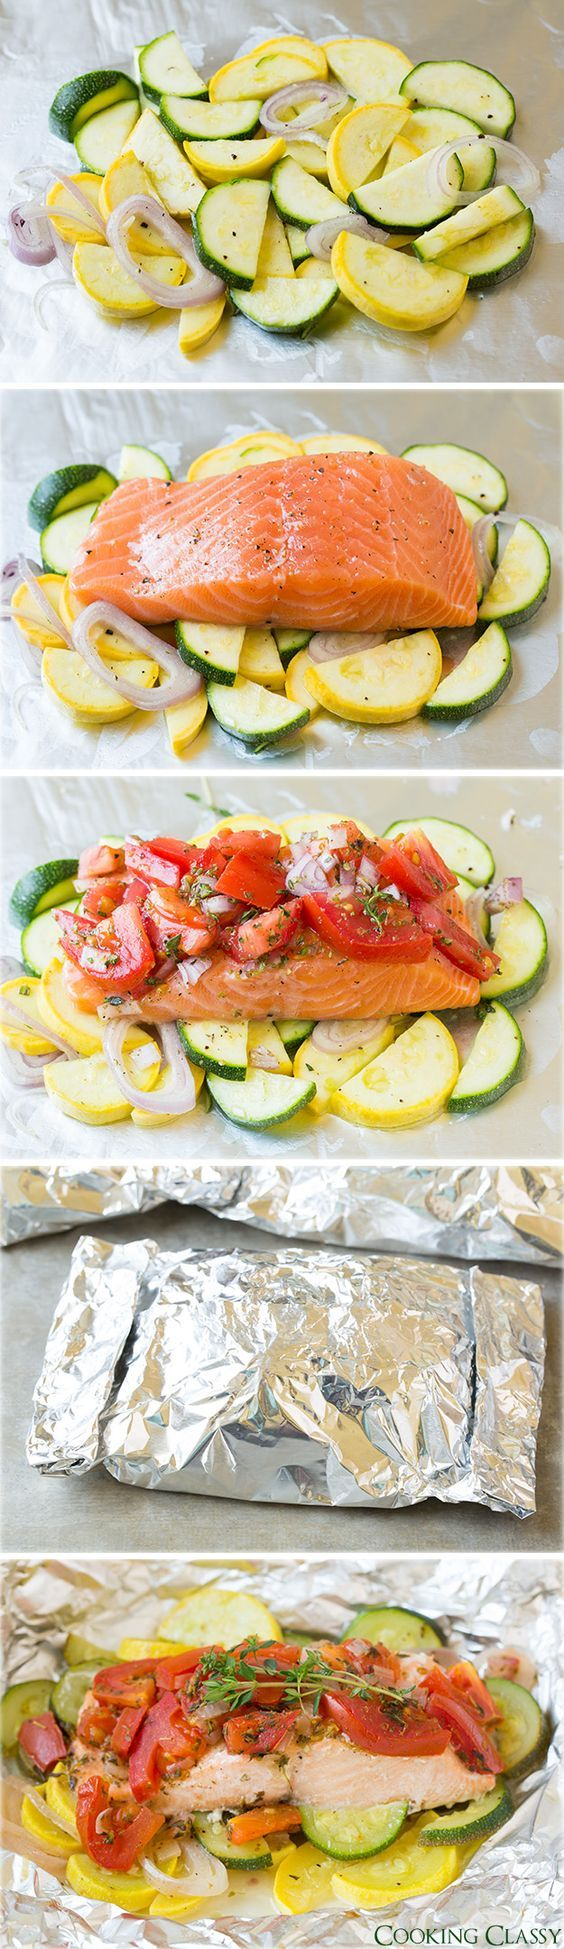 Salmon and Summer Veggies in Foil Recipe plus 24 more of the most pinned fish recipes